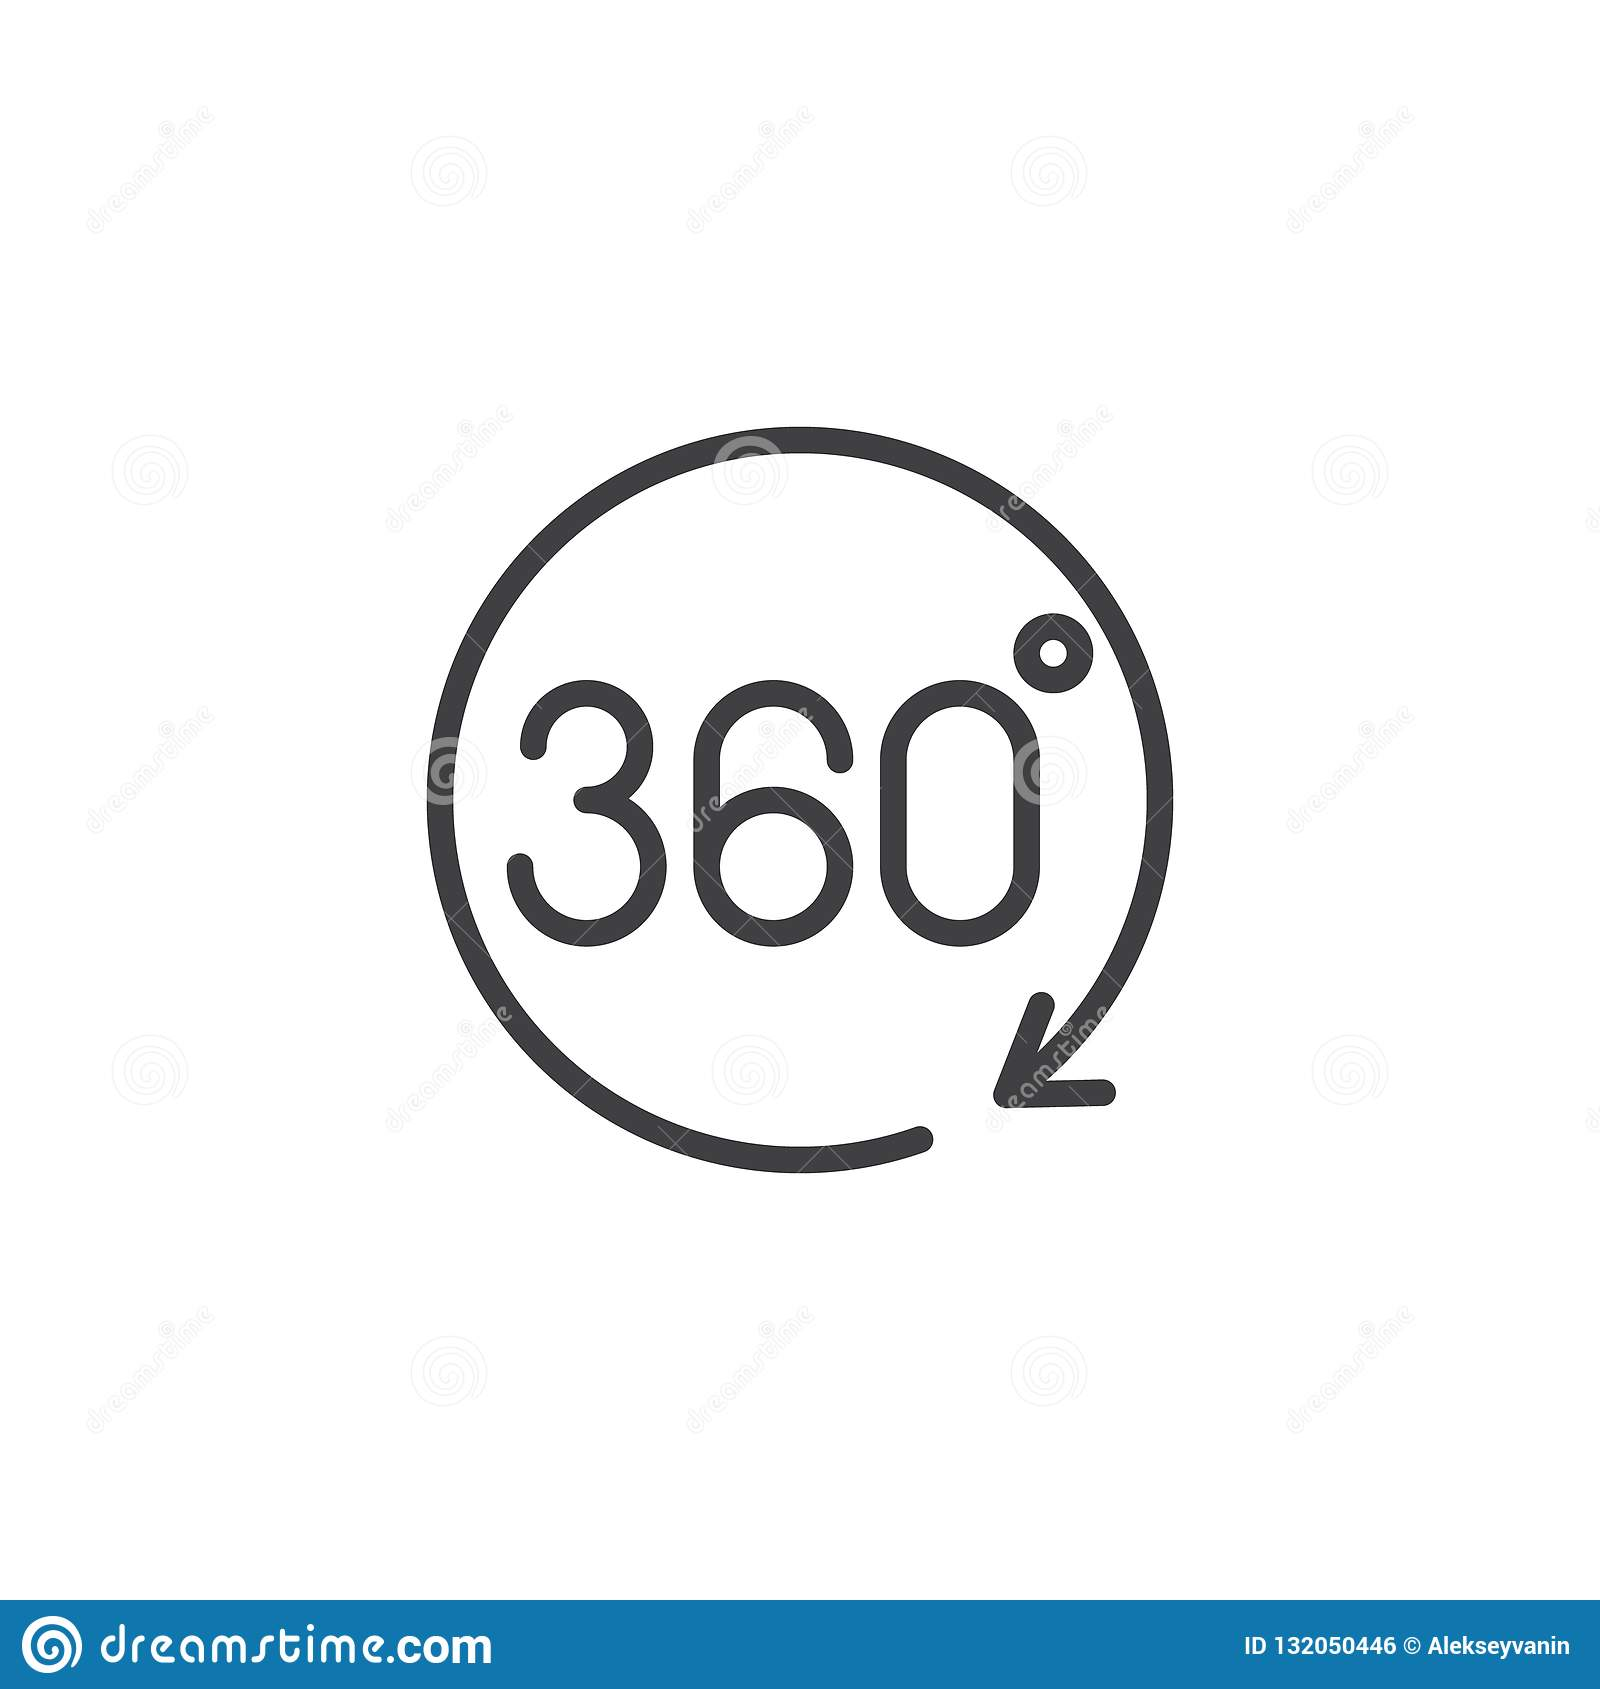 360 degrees rotation icon. Sign of rotation. Rotate application or sign with circle arrow